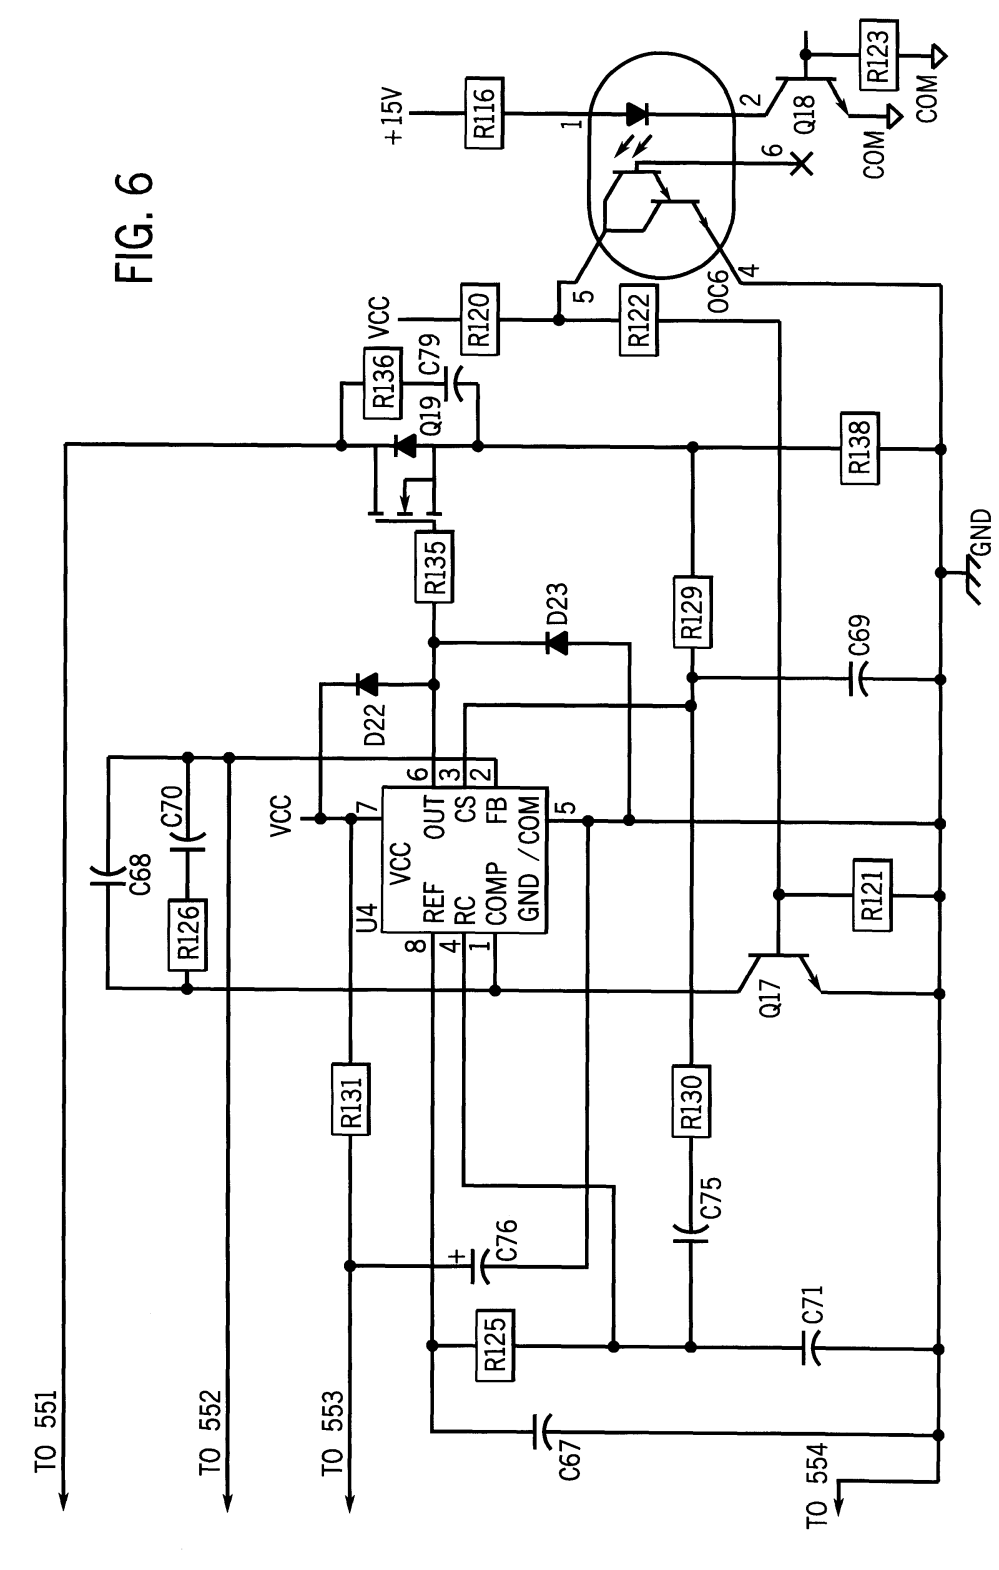 medium resolution of us06194682 20010227 d00005 patent us6194682 plasma cutter with integrated air compressor plasma cutter circuit diagram at